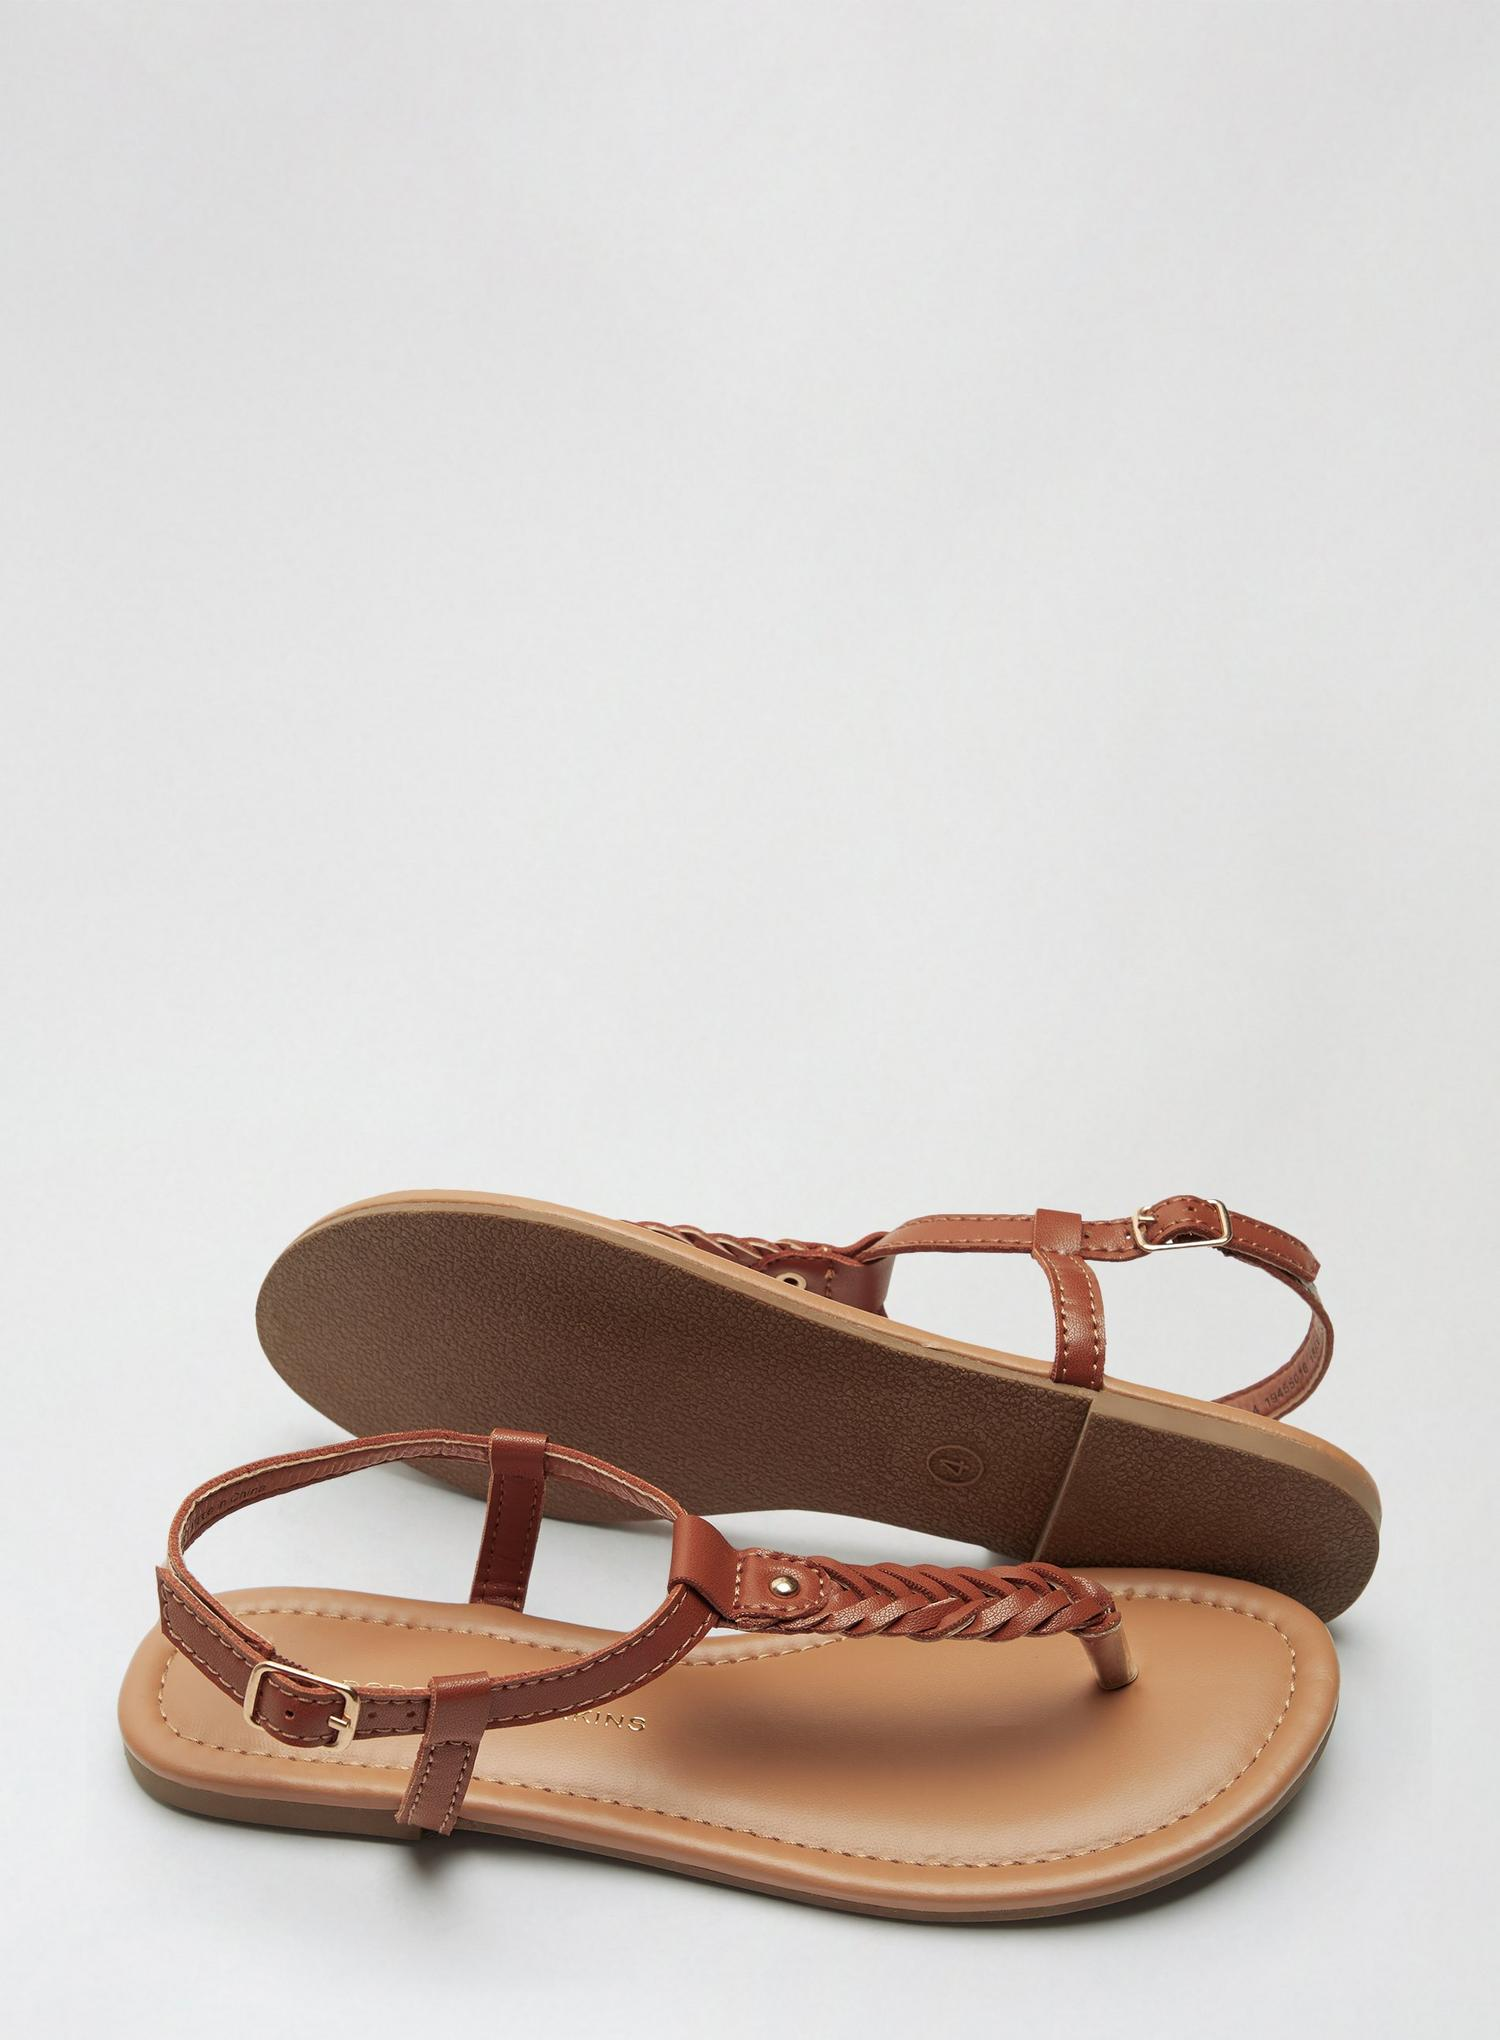 109 Tan Free Sandals image number 4